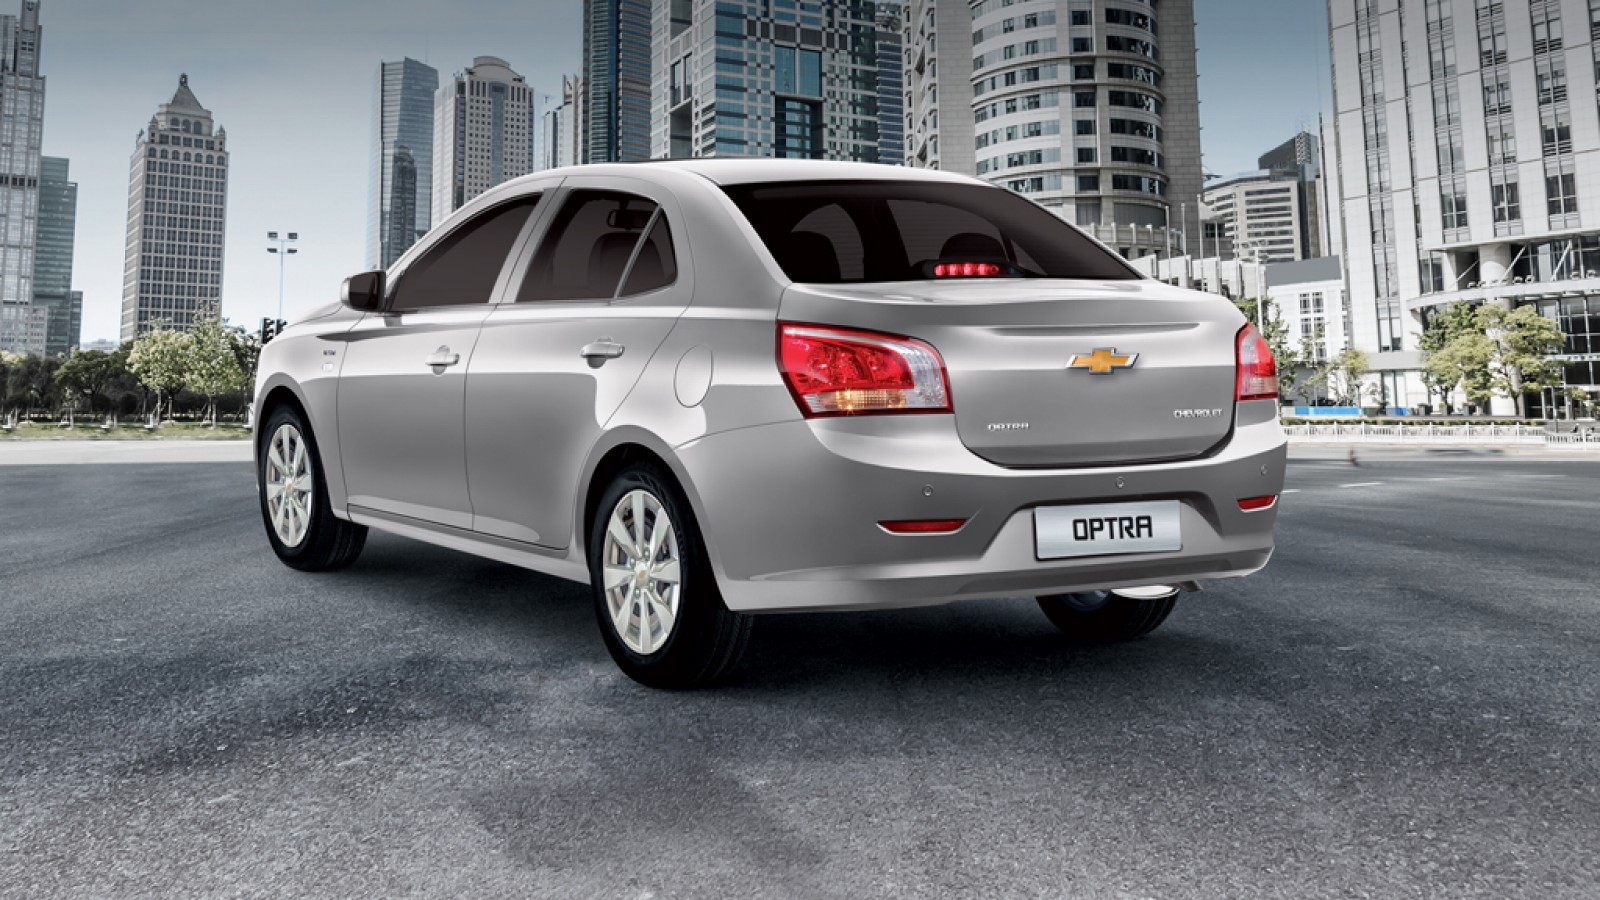 Chevrolet Optra 2019 1.5L Luxury in Egypt: New Car Prices ...